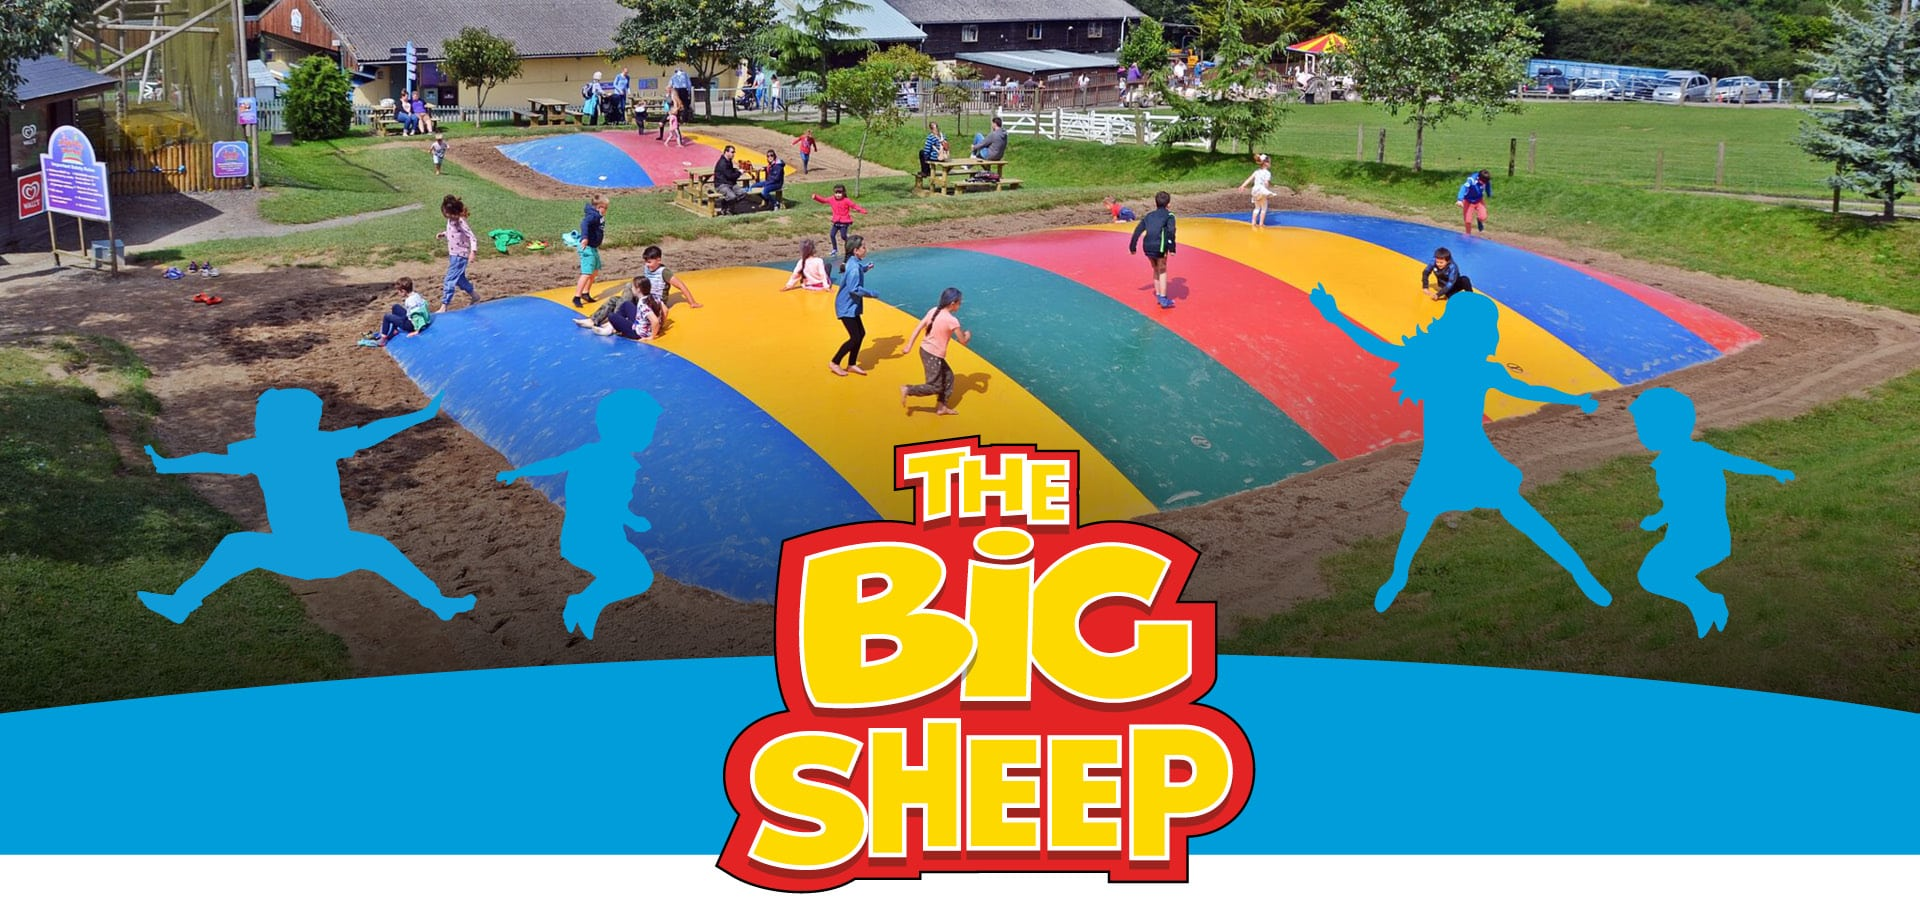 The Big Sheep Outdoor Fun